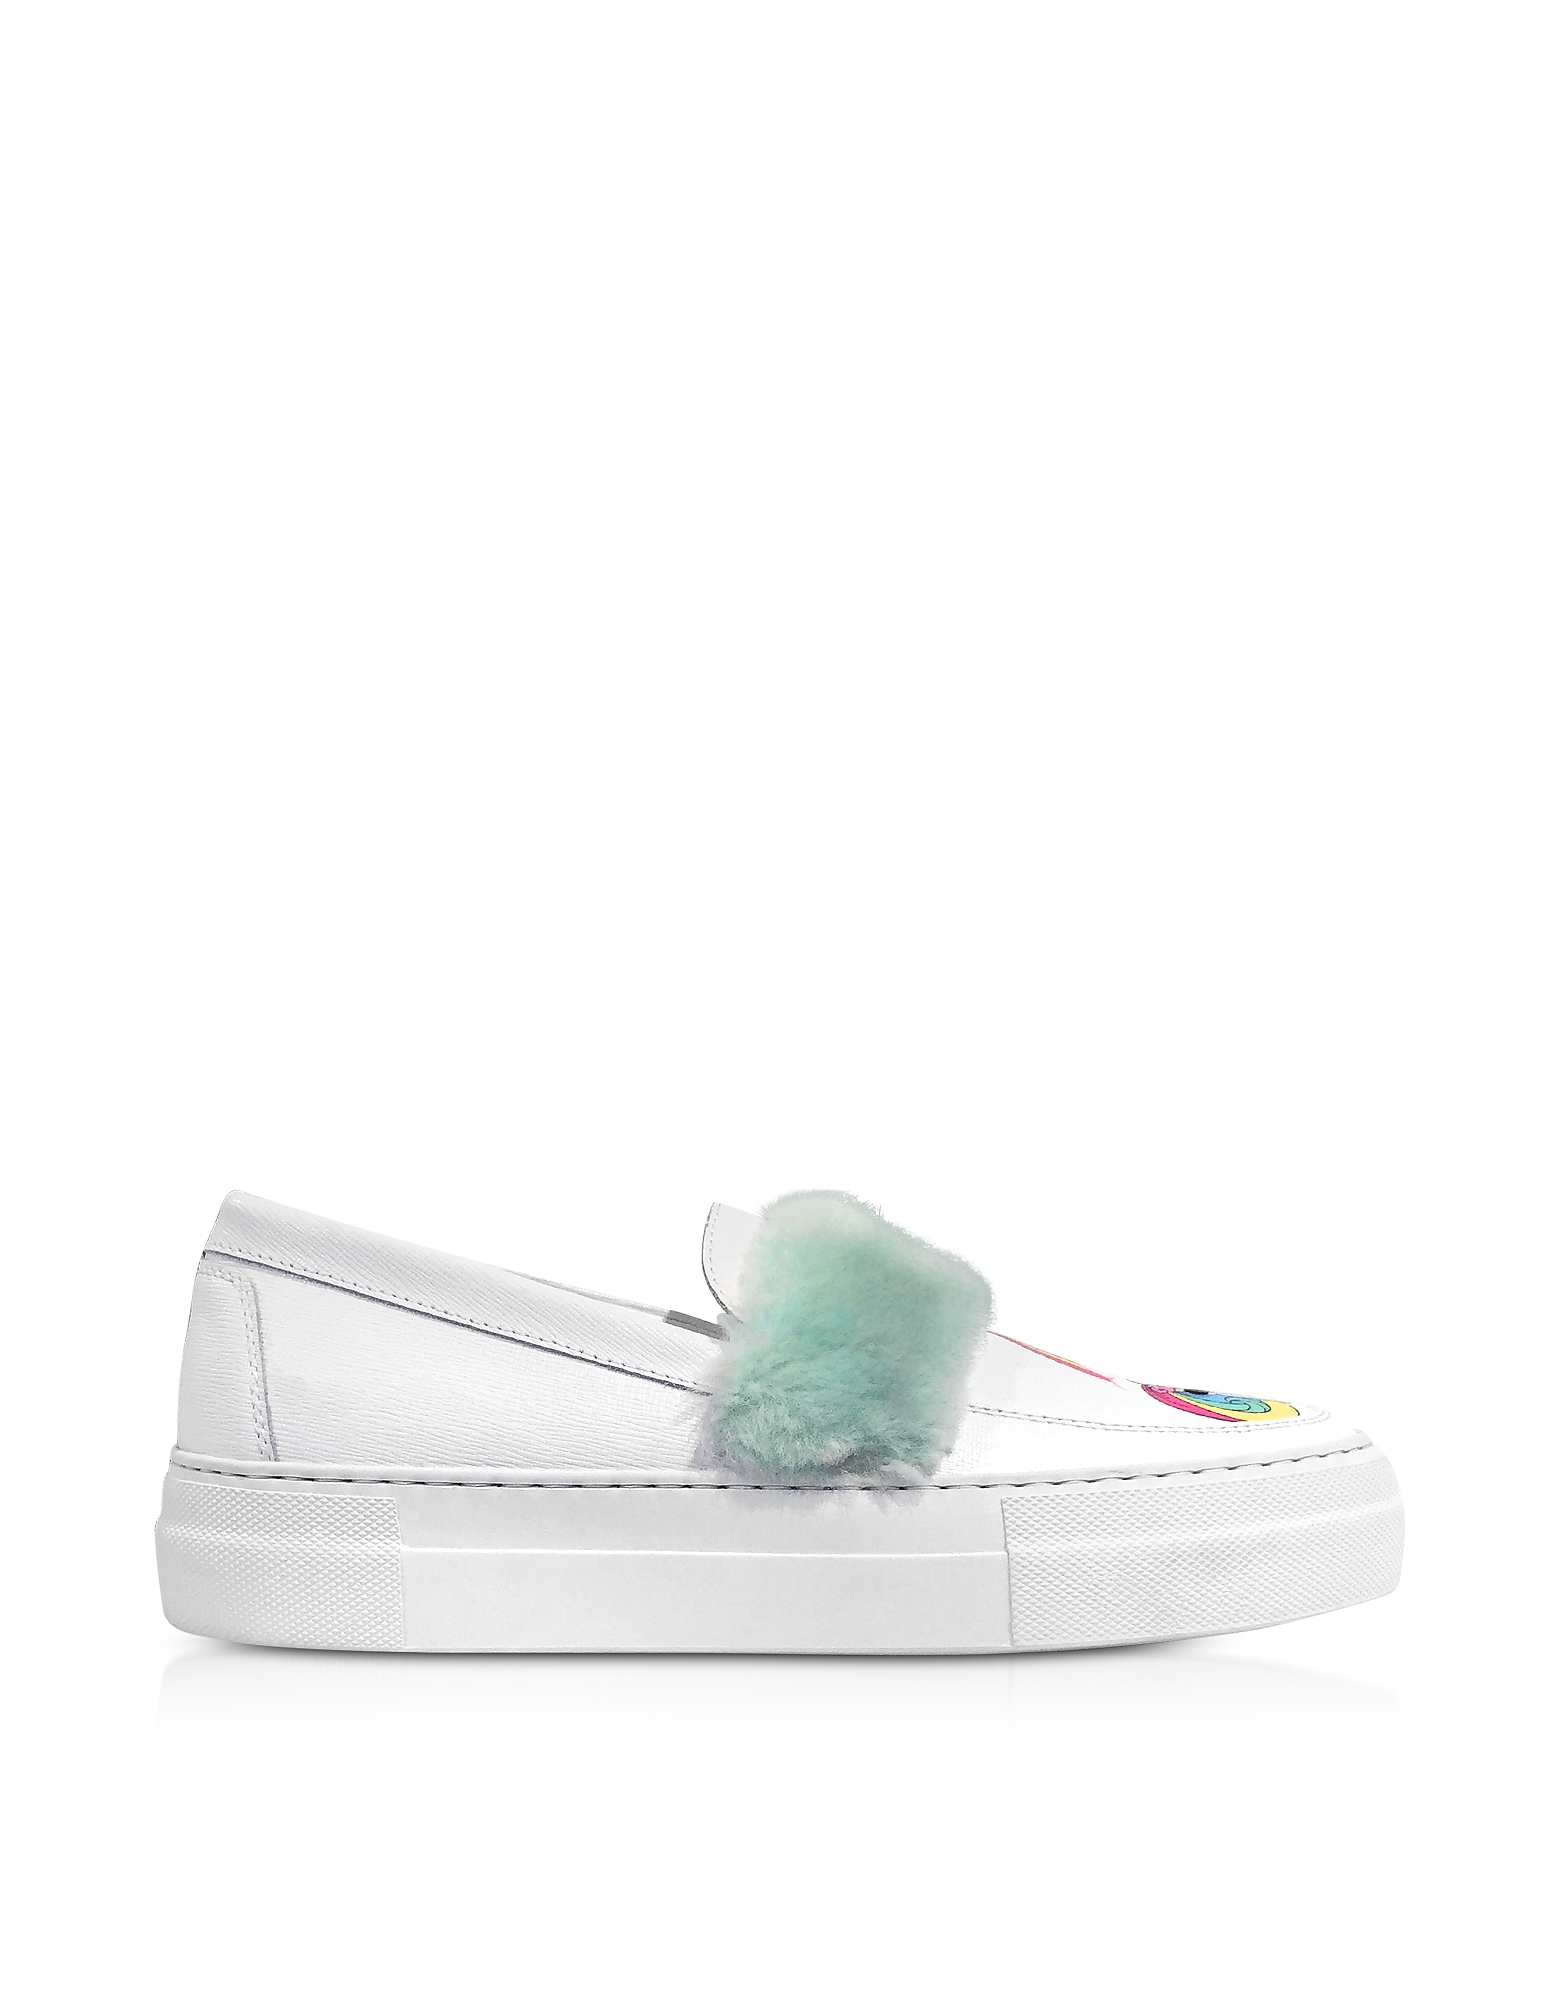 Joshua Sanders Shoes, My Little Pony Eco Fur Slip on Sneakers